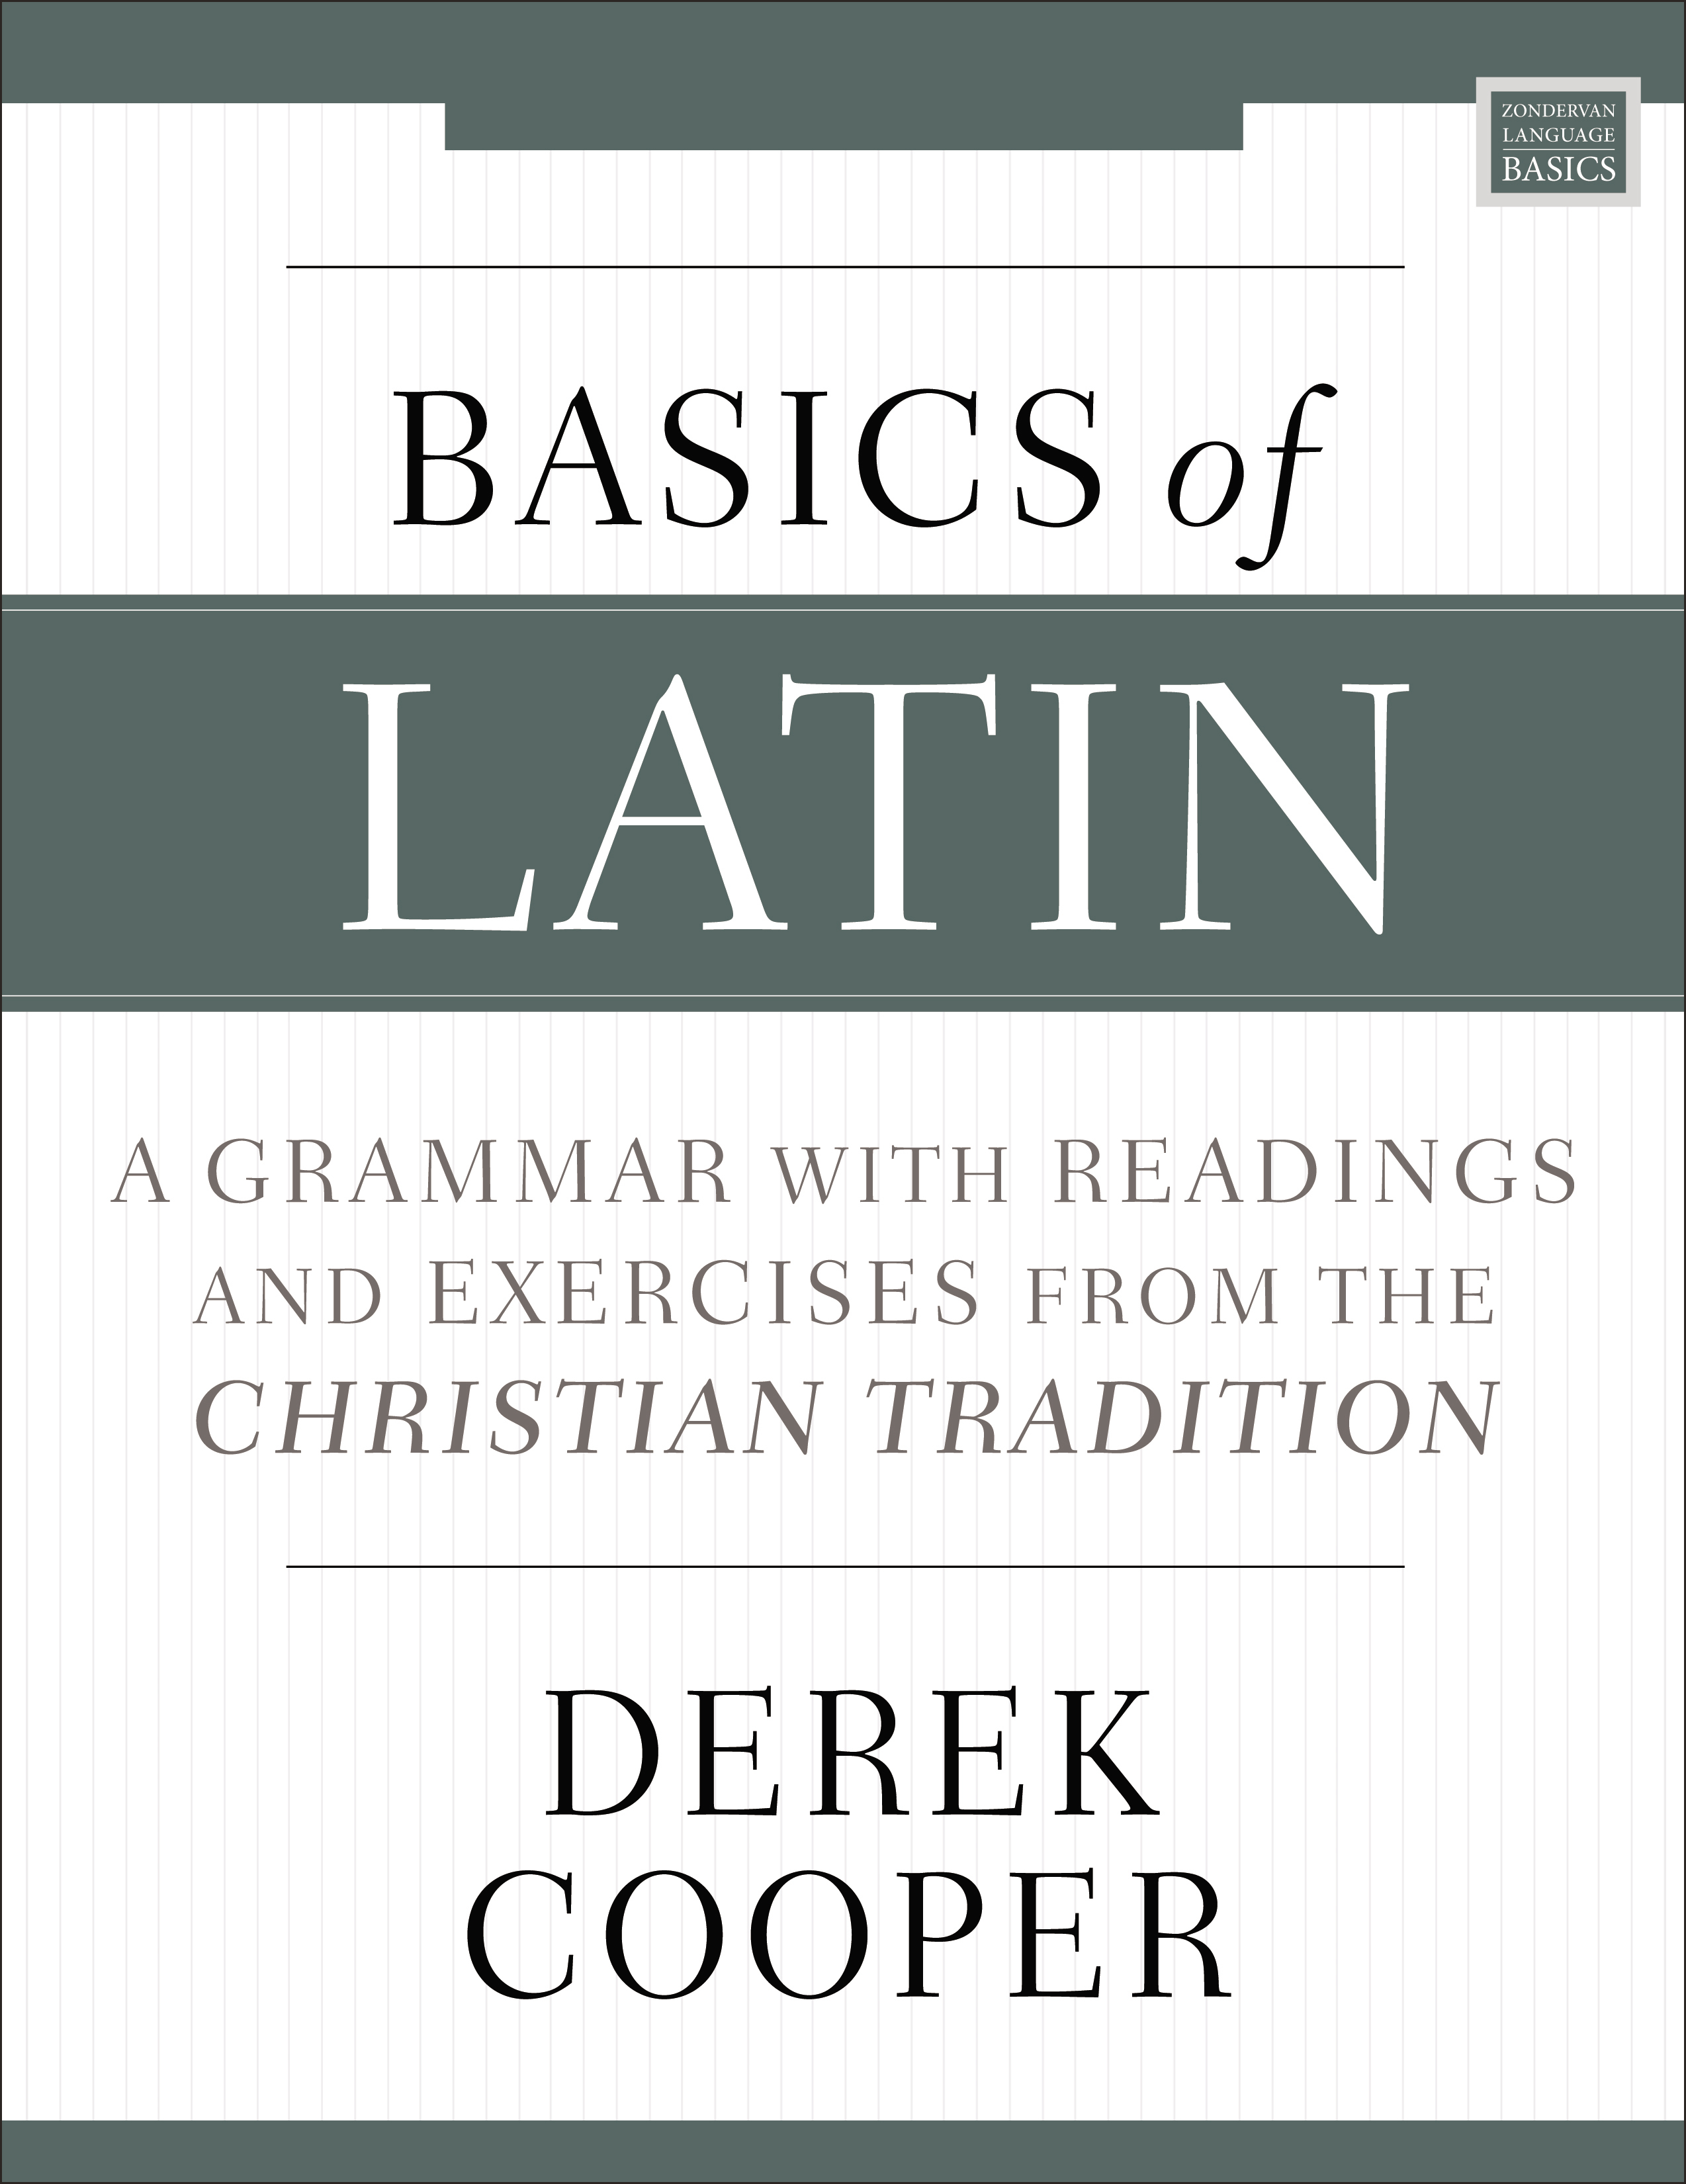 Basics of Latin